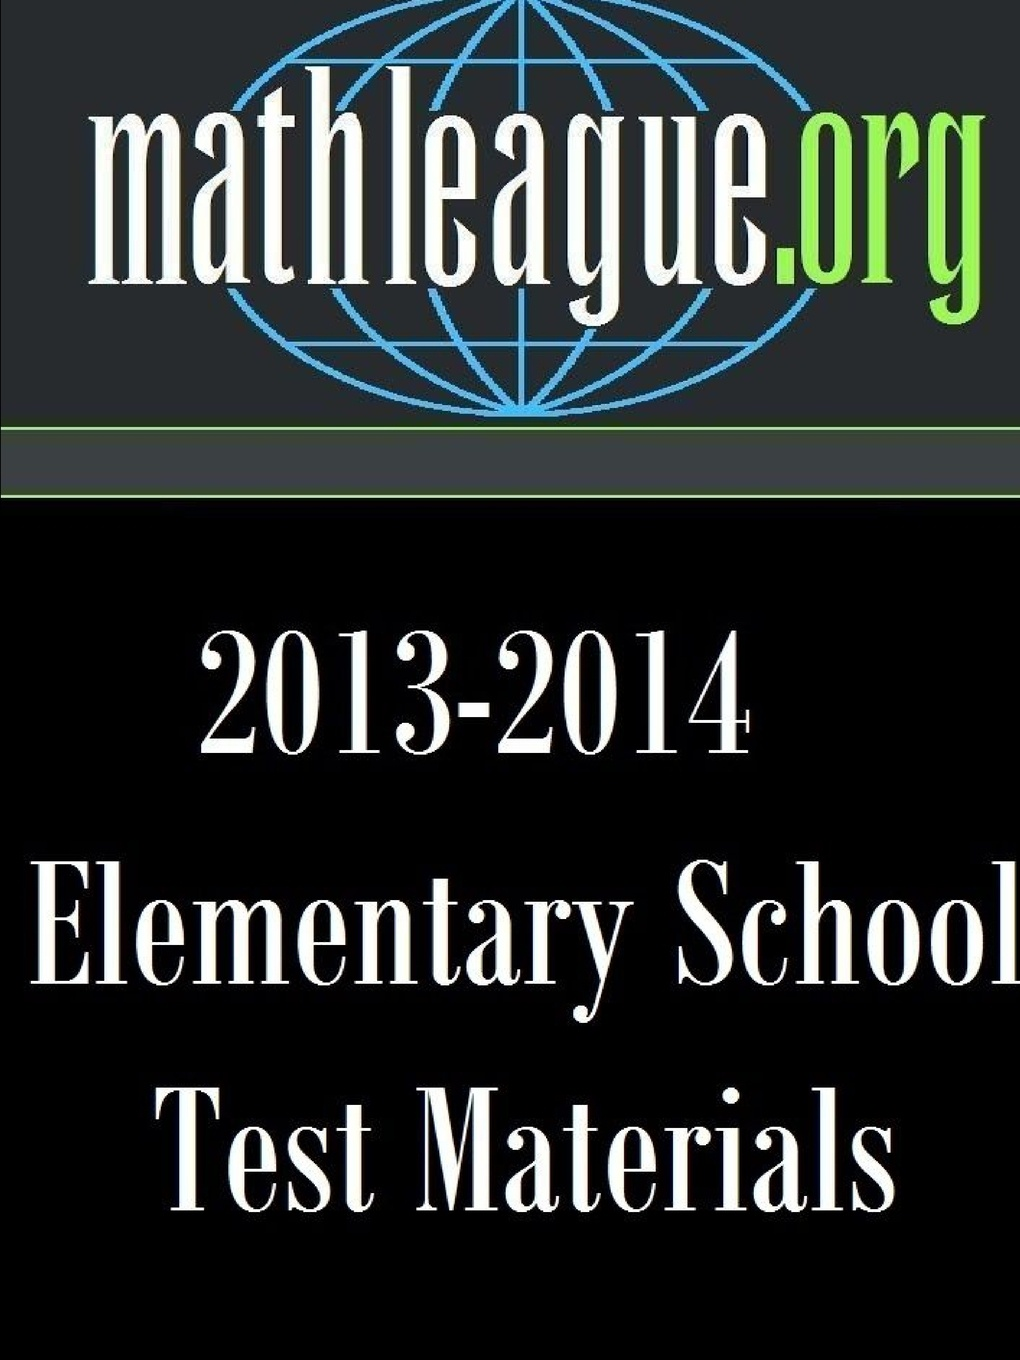 Tim Sanders Elementary School Test Materials 2013-2014 test